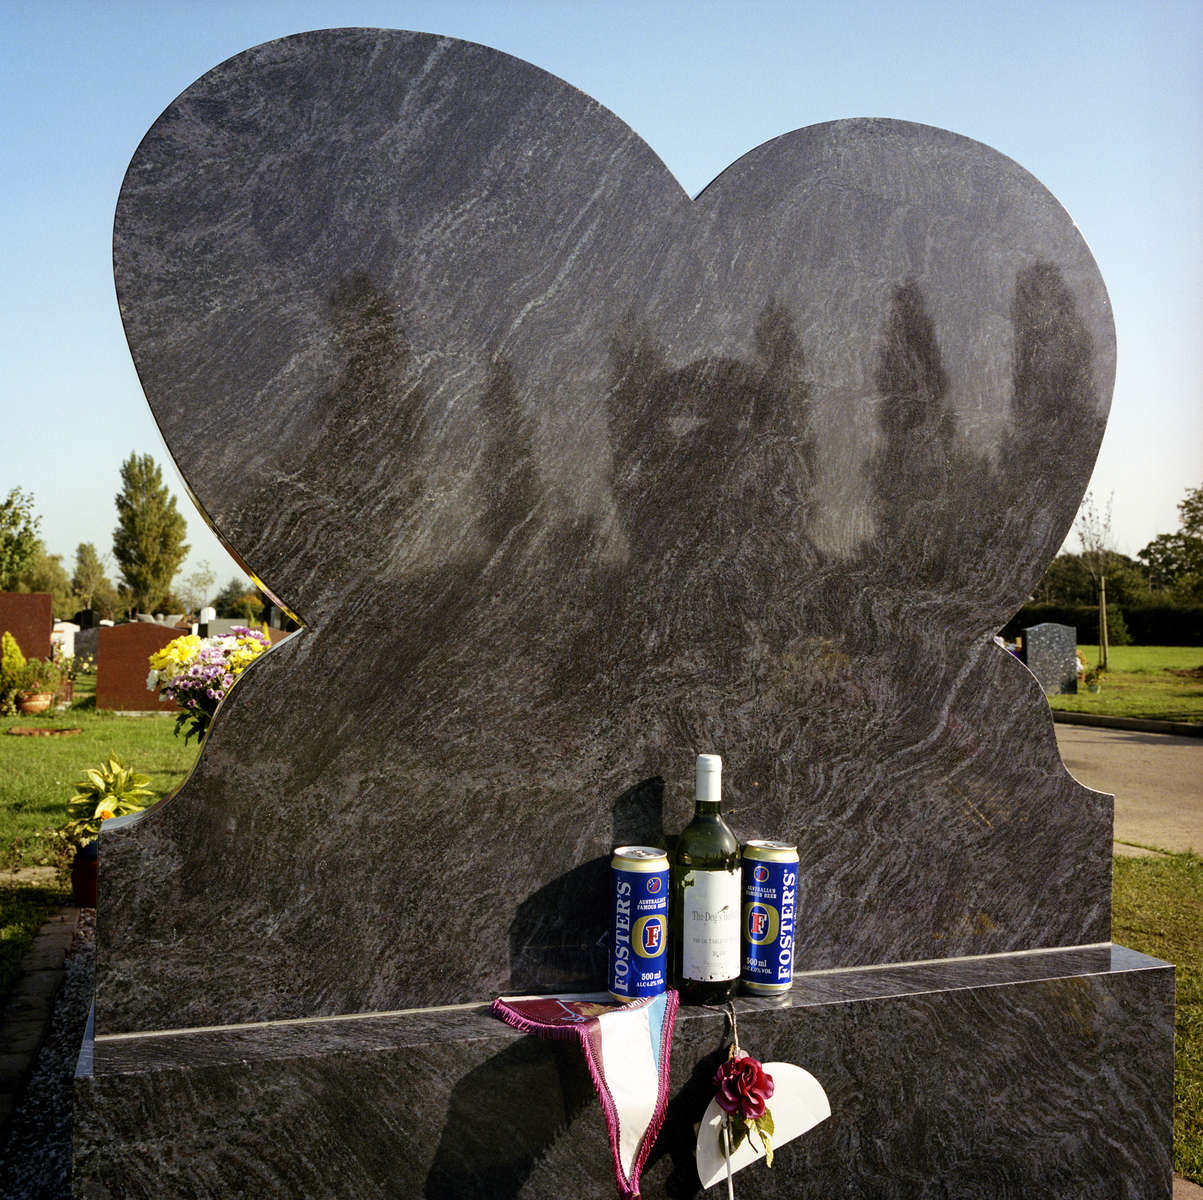 A bottle of The Dog's Bollocks white wine, two cans of Foster's lager and a West Ham United Football Club pennant placed on a memorial at a graveyard in Cheshunt. October 2001